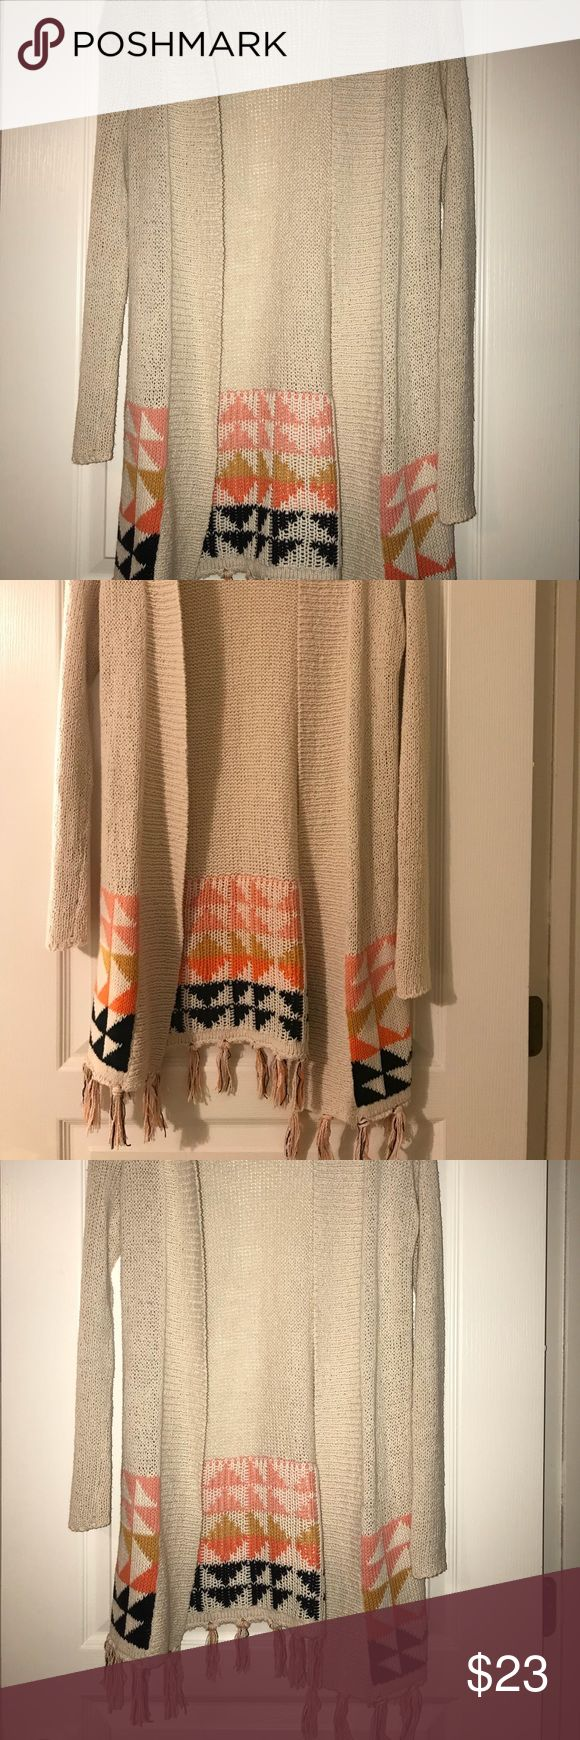 Roxy Cardigan Roxy cardigan. Beachy and cute to layer. Worn once, it does have one area that you can see in the pictures where it is not perfect but can only be seen from the inside of the cardigan. Roxy Sweaters Cardigans